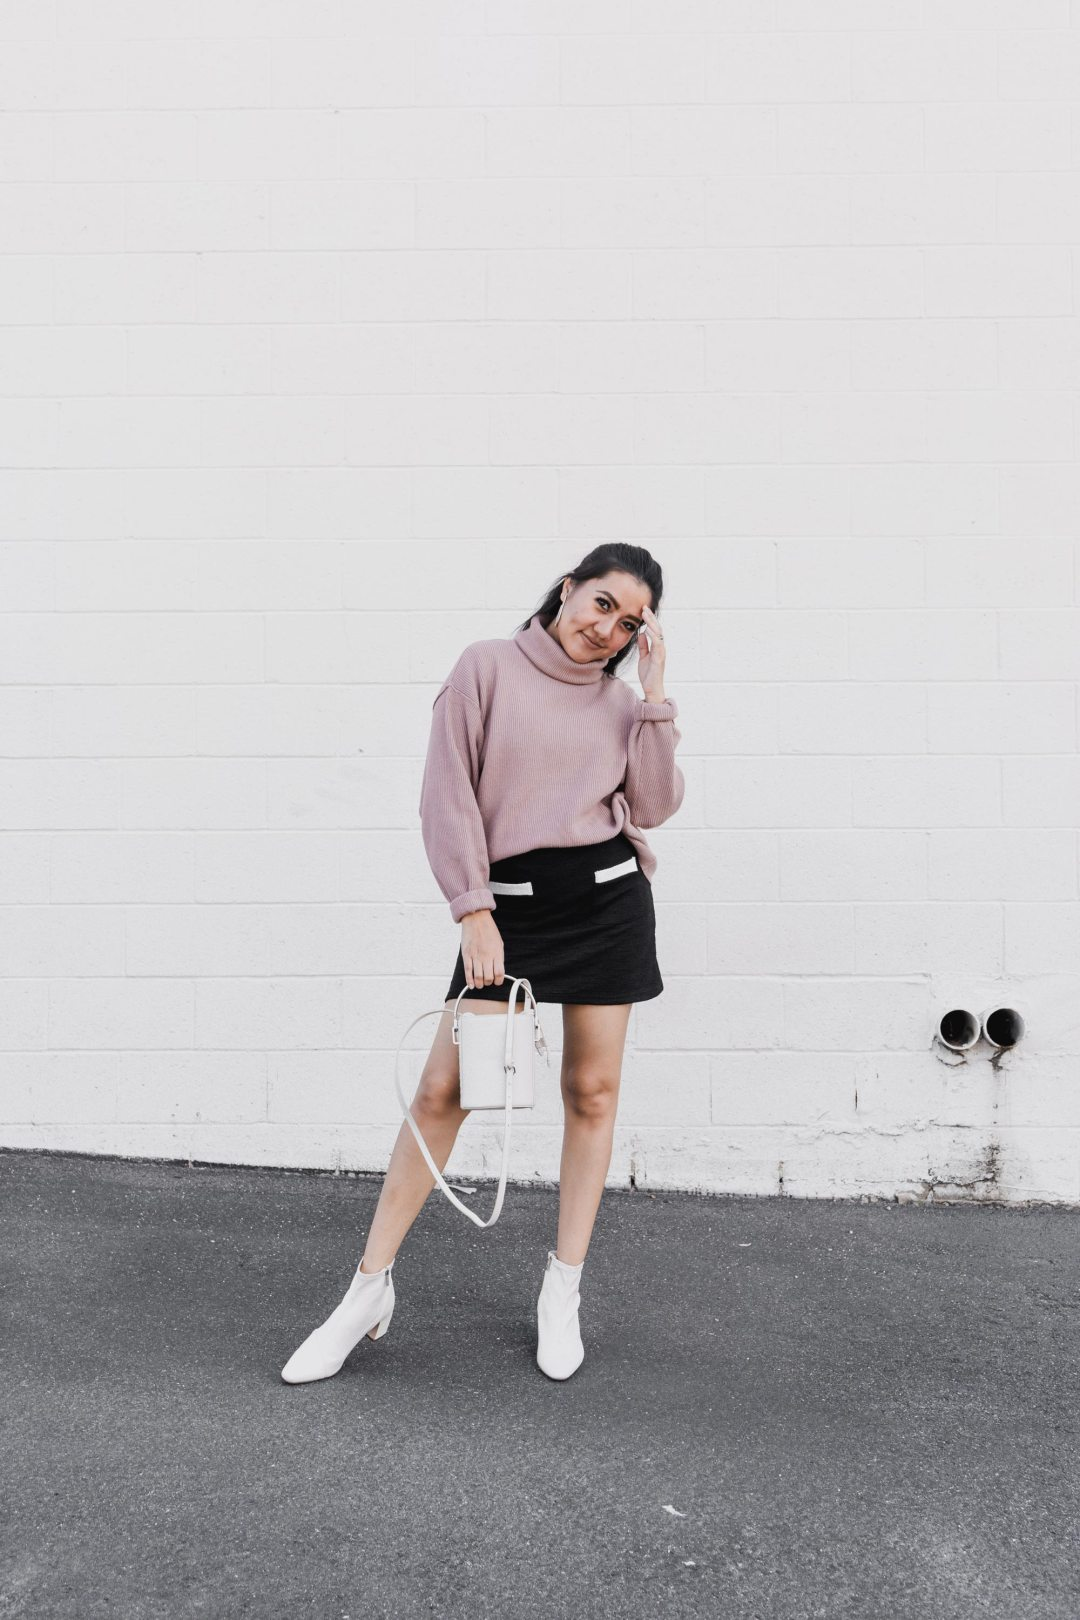 Fall-Must-Have-Items-in-Your-Closet_Molly-Larsen_AllAboutGoodVibes.com_IG_@TheVibesCloset_Arizona-Blogger_Ankle-boots_Structures-Bag_Turtle-Neck-Knit-Sweater_Revolve_Fall-Outfit-Inspo